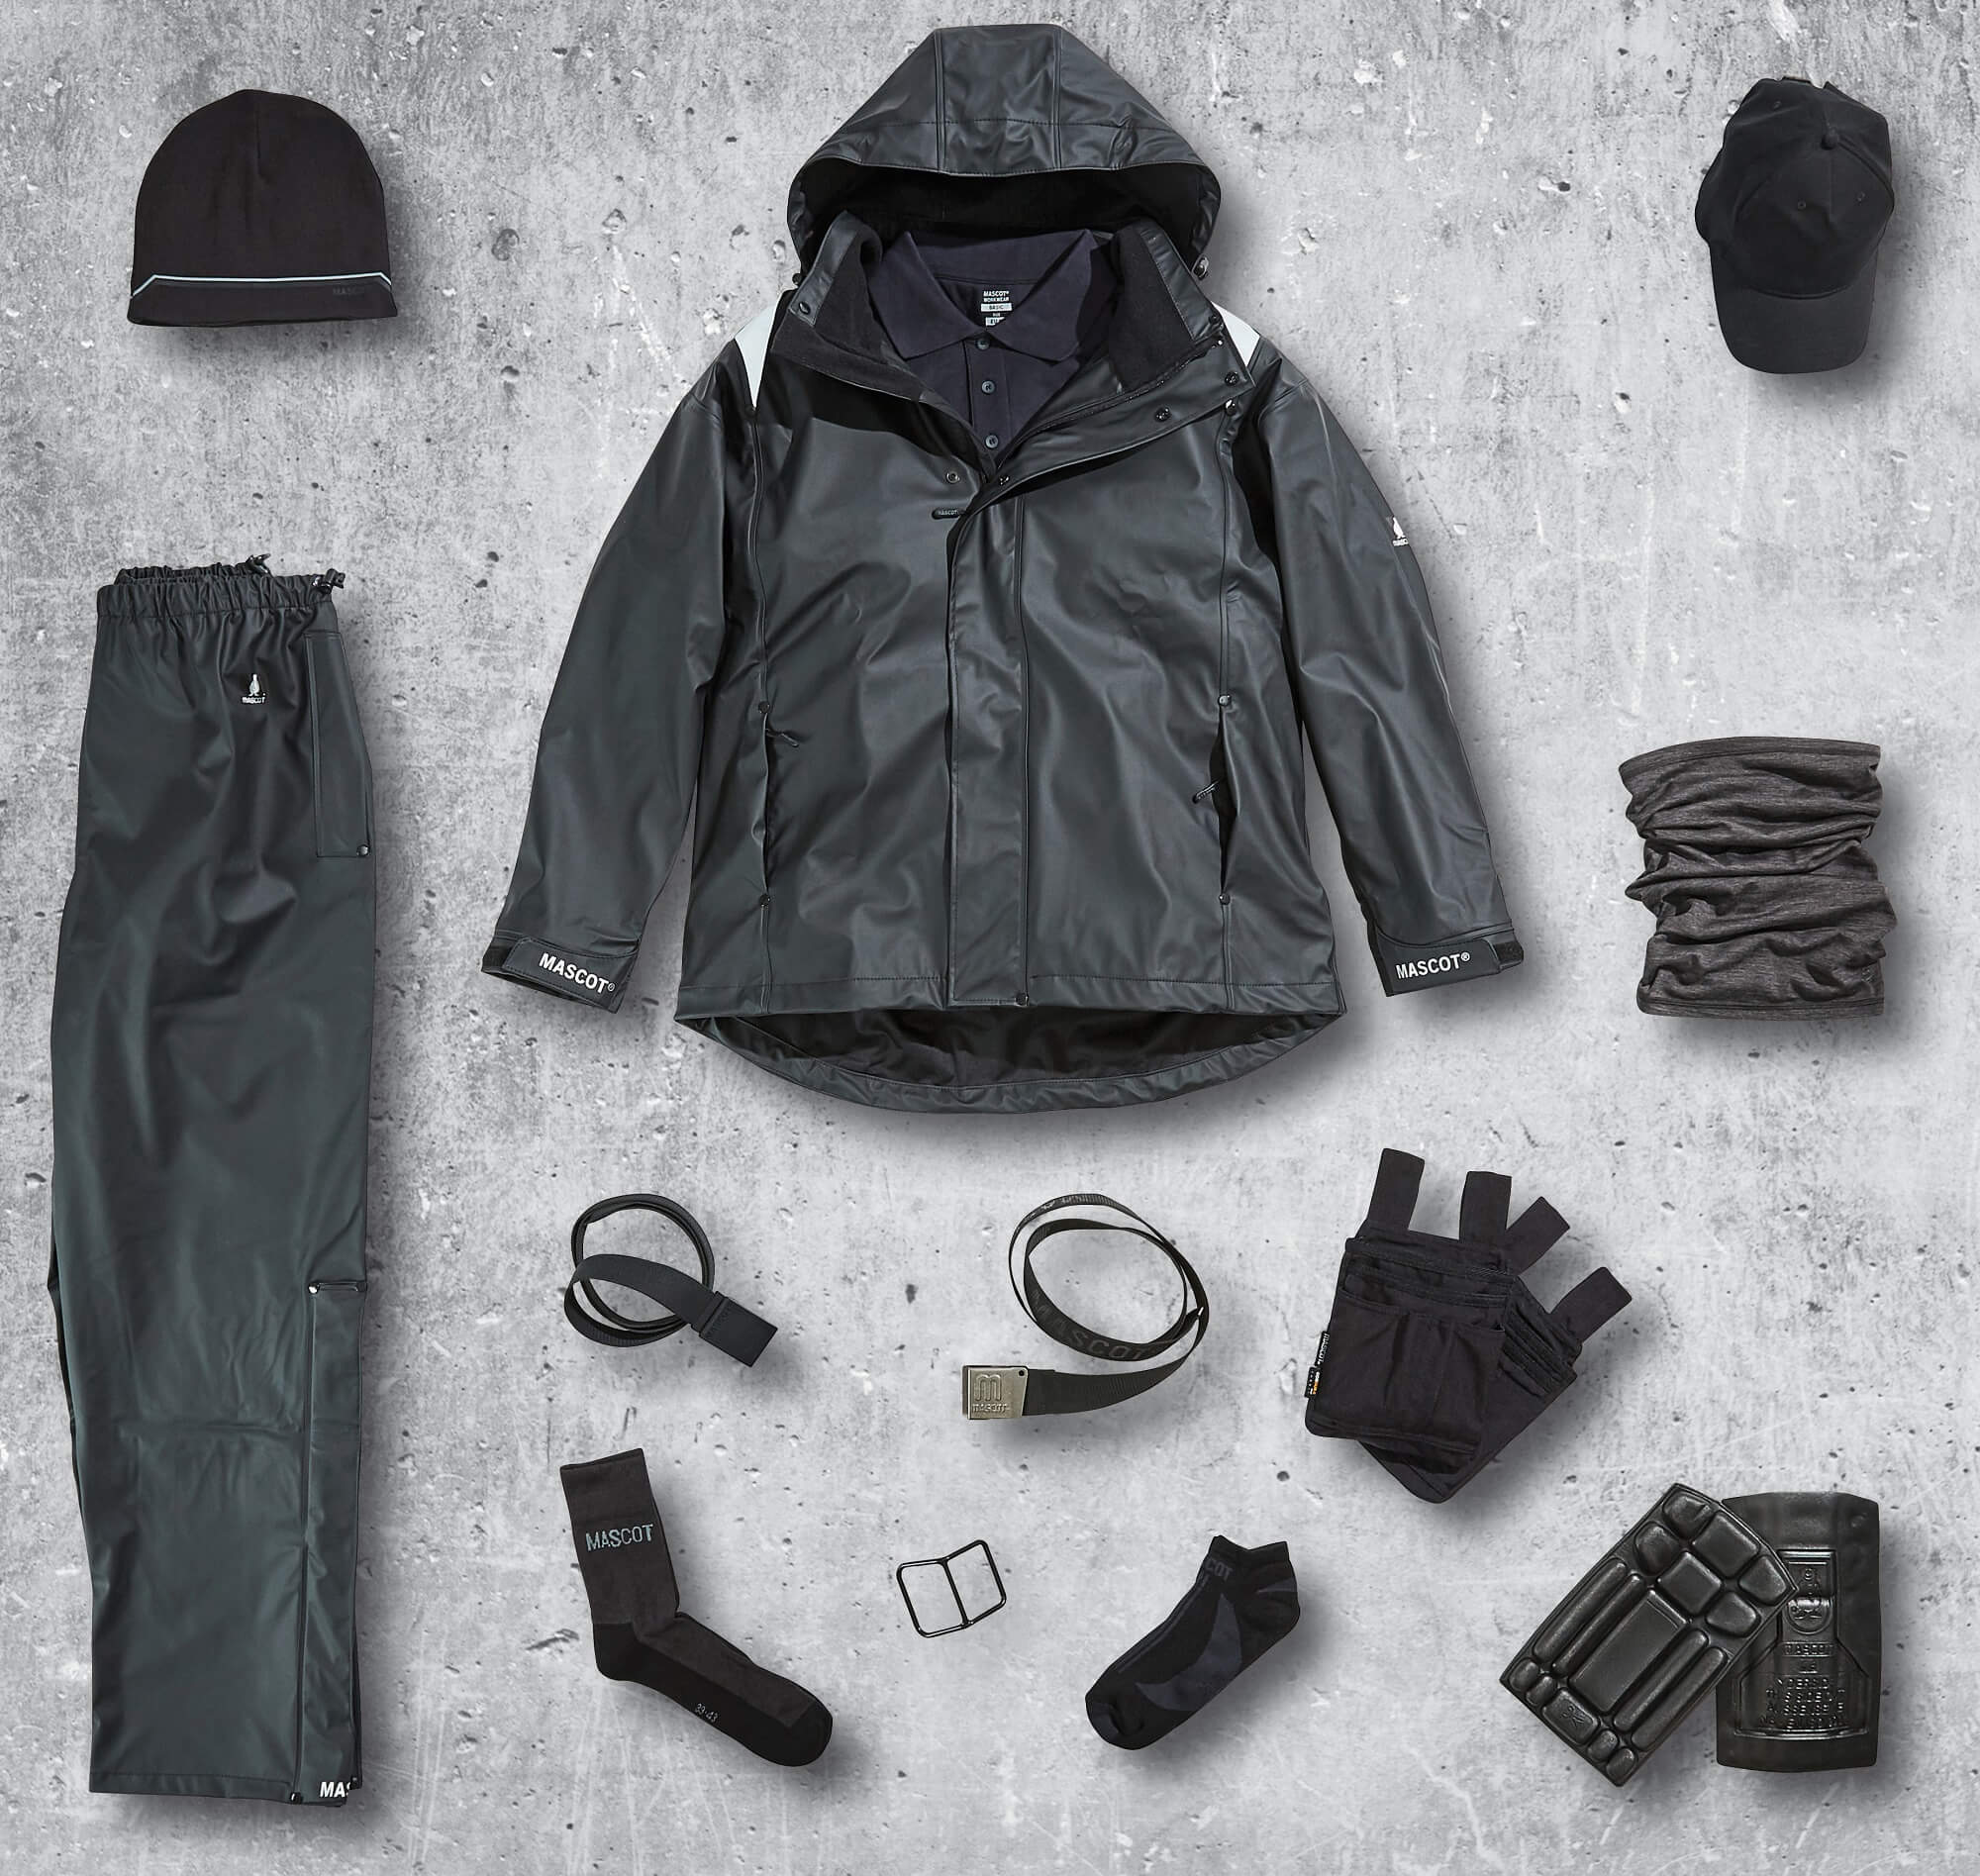 Waterproof Clothing & Accessories - Black - Collage